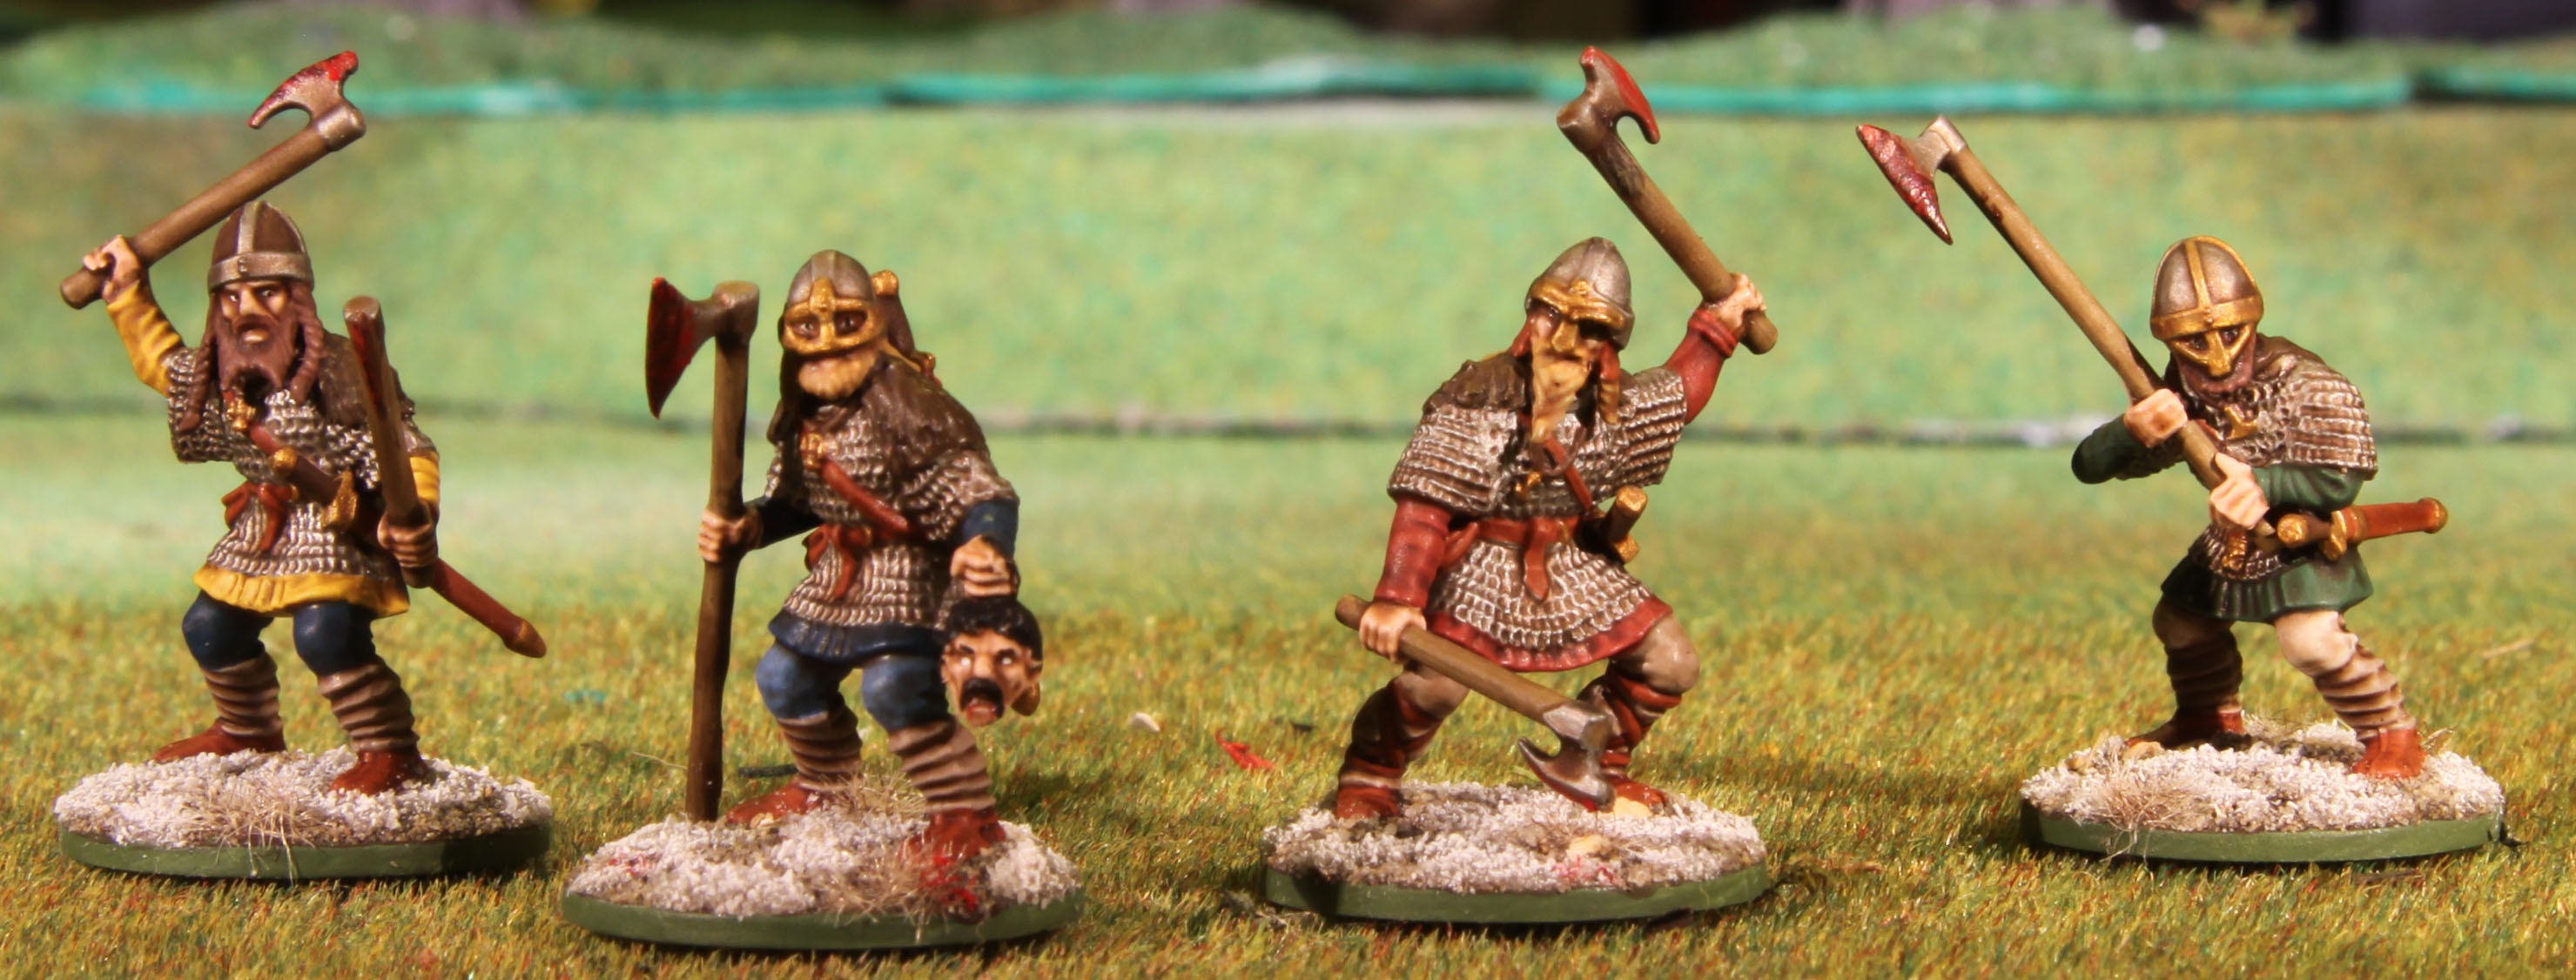 Saga Vikings The First Three Points Dhcwargamesblog